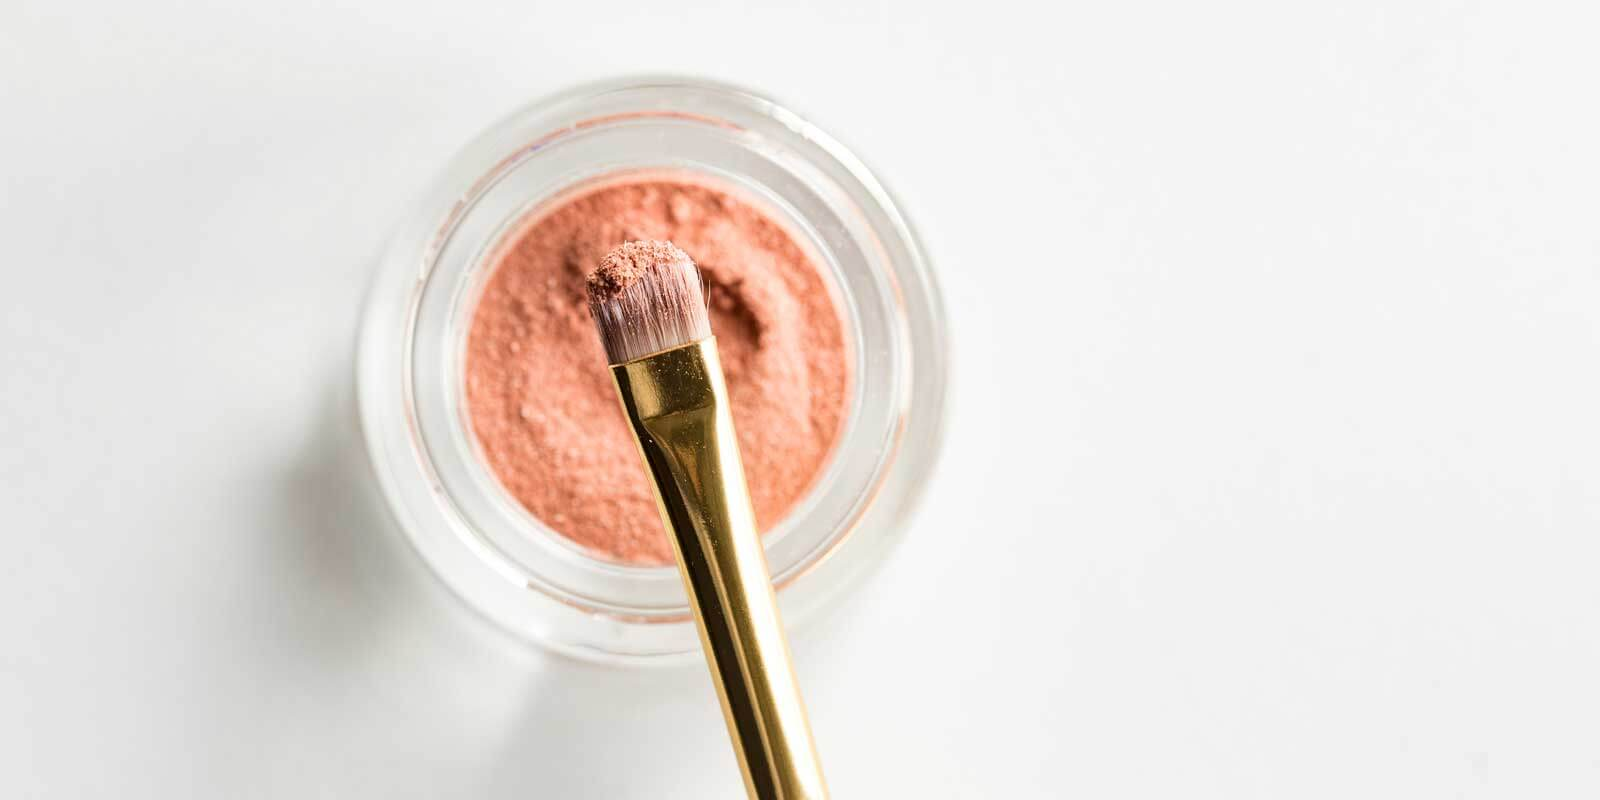 Closeup of a powdery makeup and makeup brush